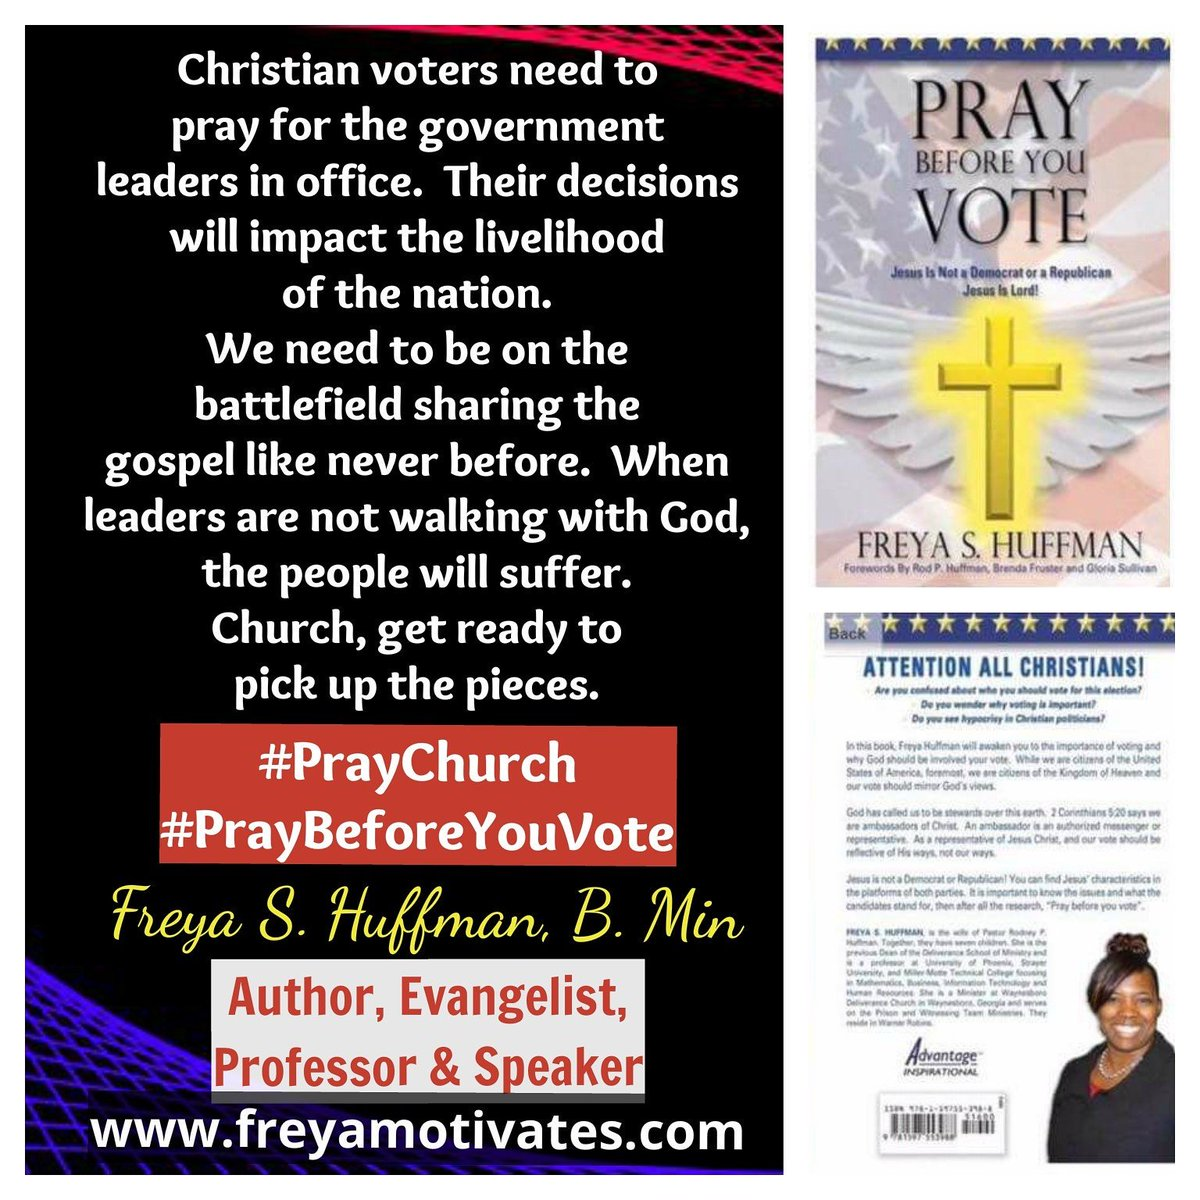 pics How to Pray for Your Livelihood, Leaders, Wisdom, Governments and Such (Christianity)